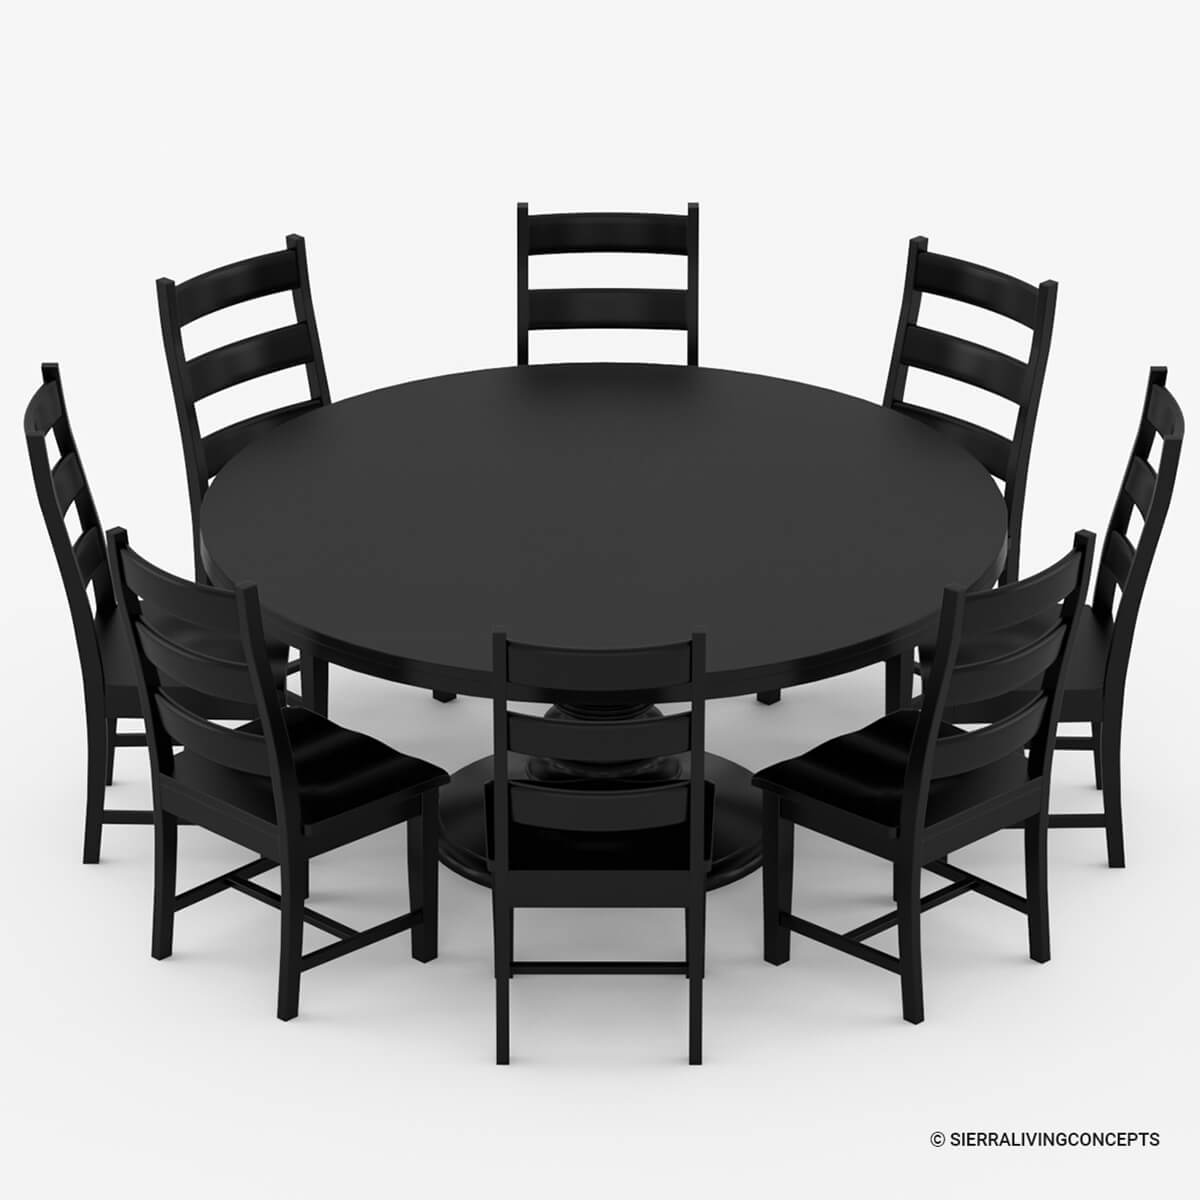 nottingham rustic solid wood black round dining room table set On black round dining table